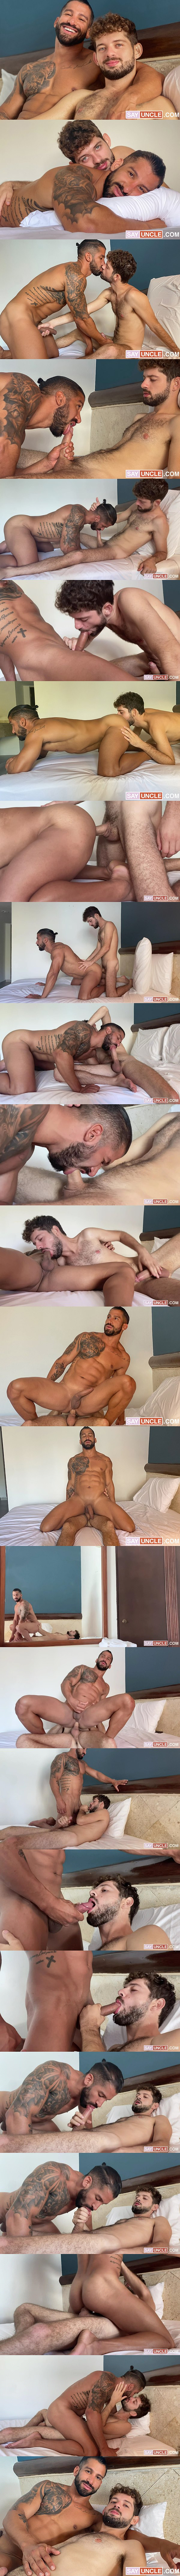 Latinleche - lean fuzzy latin jock Rob Campos barebacks handsome chiseled beefcake Octavio's bubble ass in Octavio's bottoming debut in Climbed That Chiseled Man 02